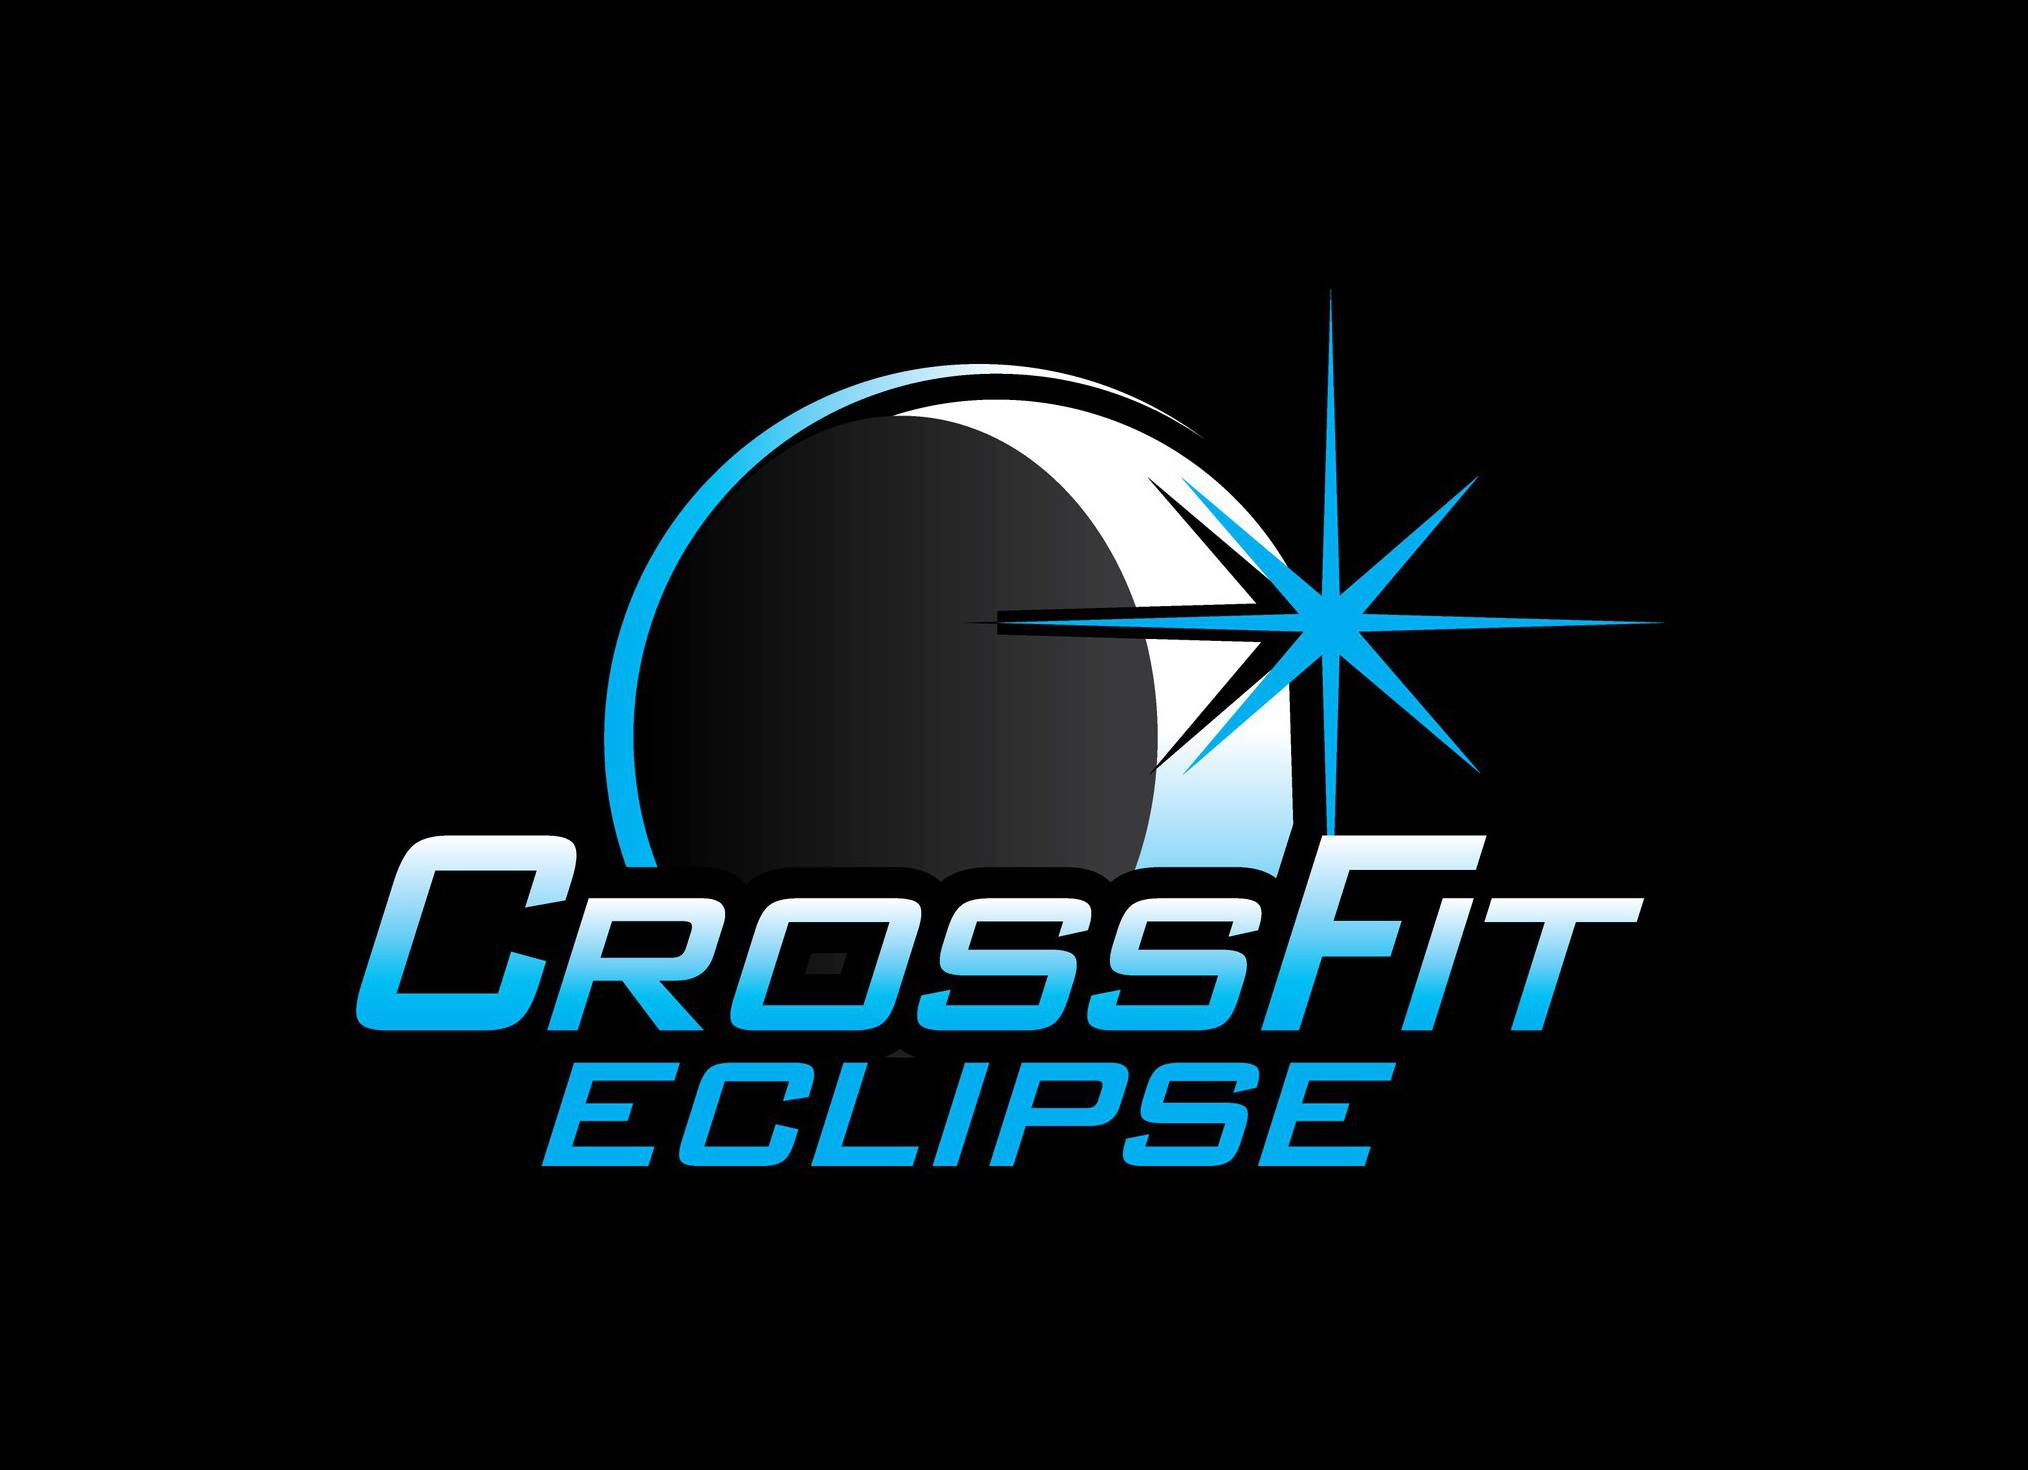 CrossFit Eclipse logo